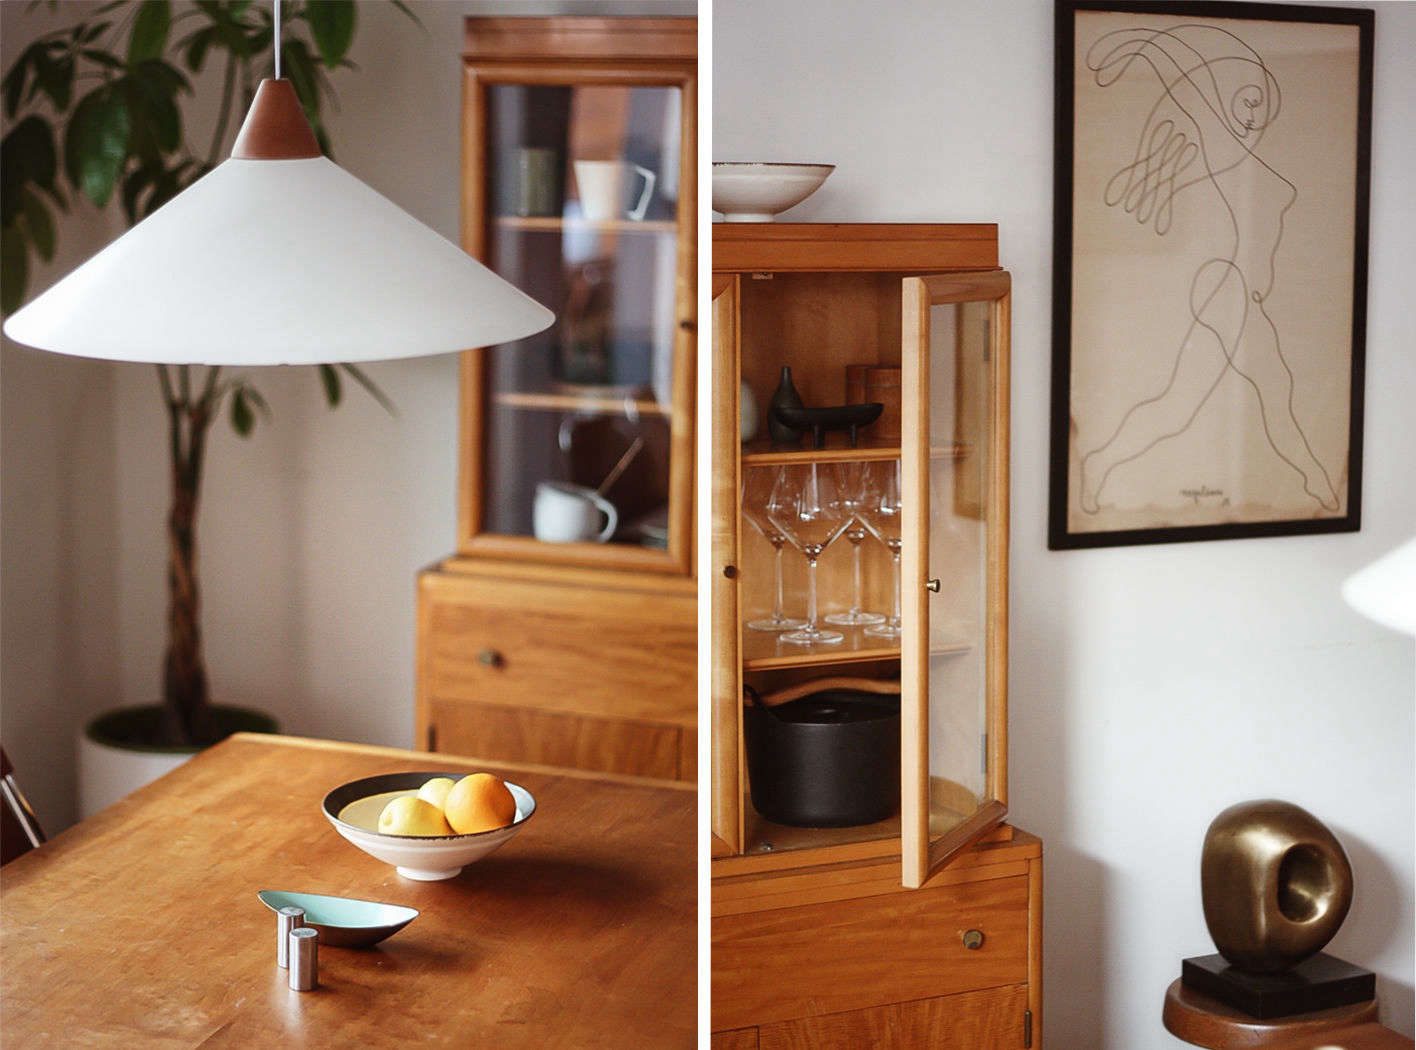 Midcentury modern details in the dining room feature a pendant lamp made in Sweden, as well as a Danish hutch, a 56 drawing by Jean Negulesco, and an unidentified 50s sculpture.